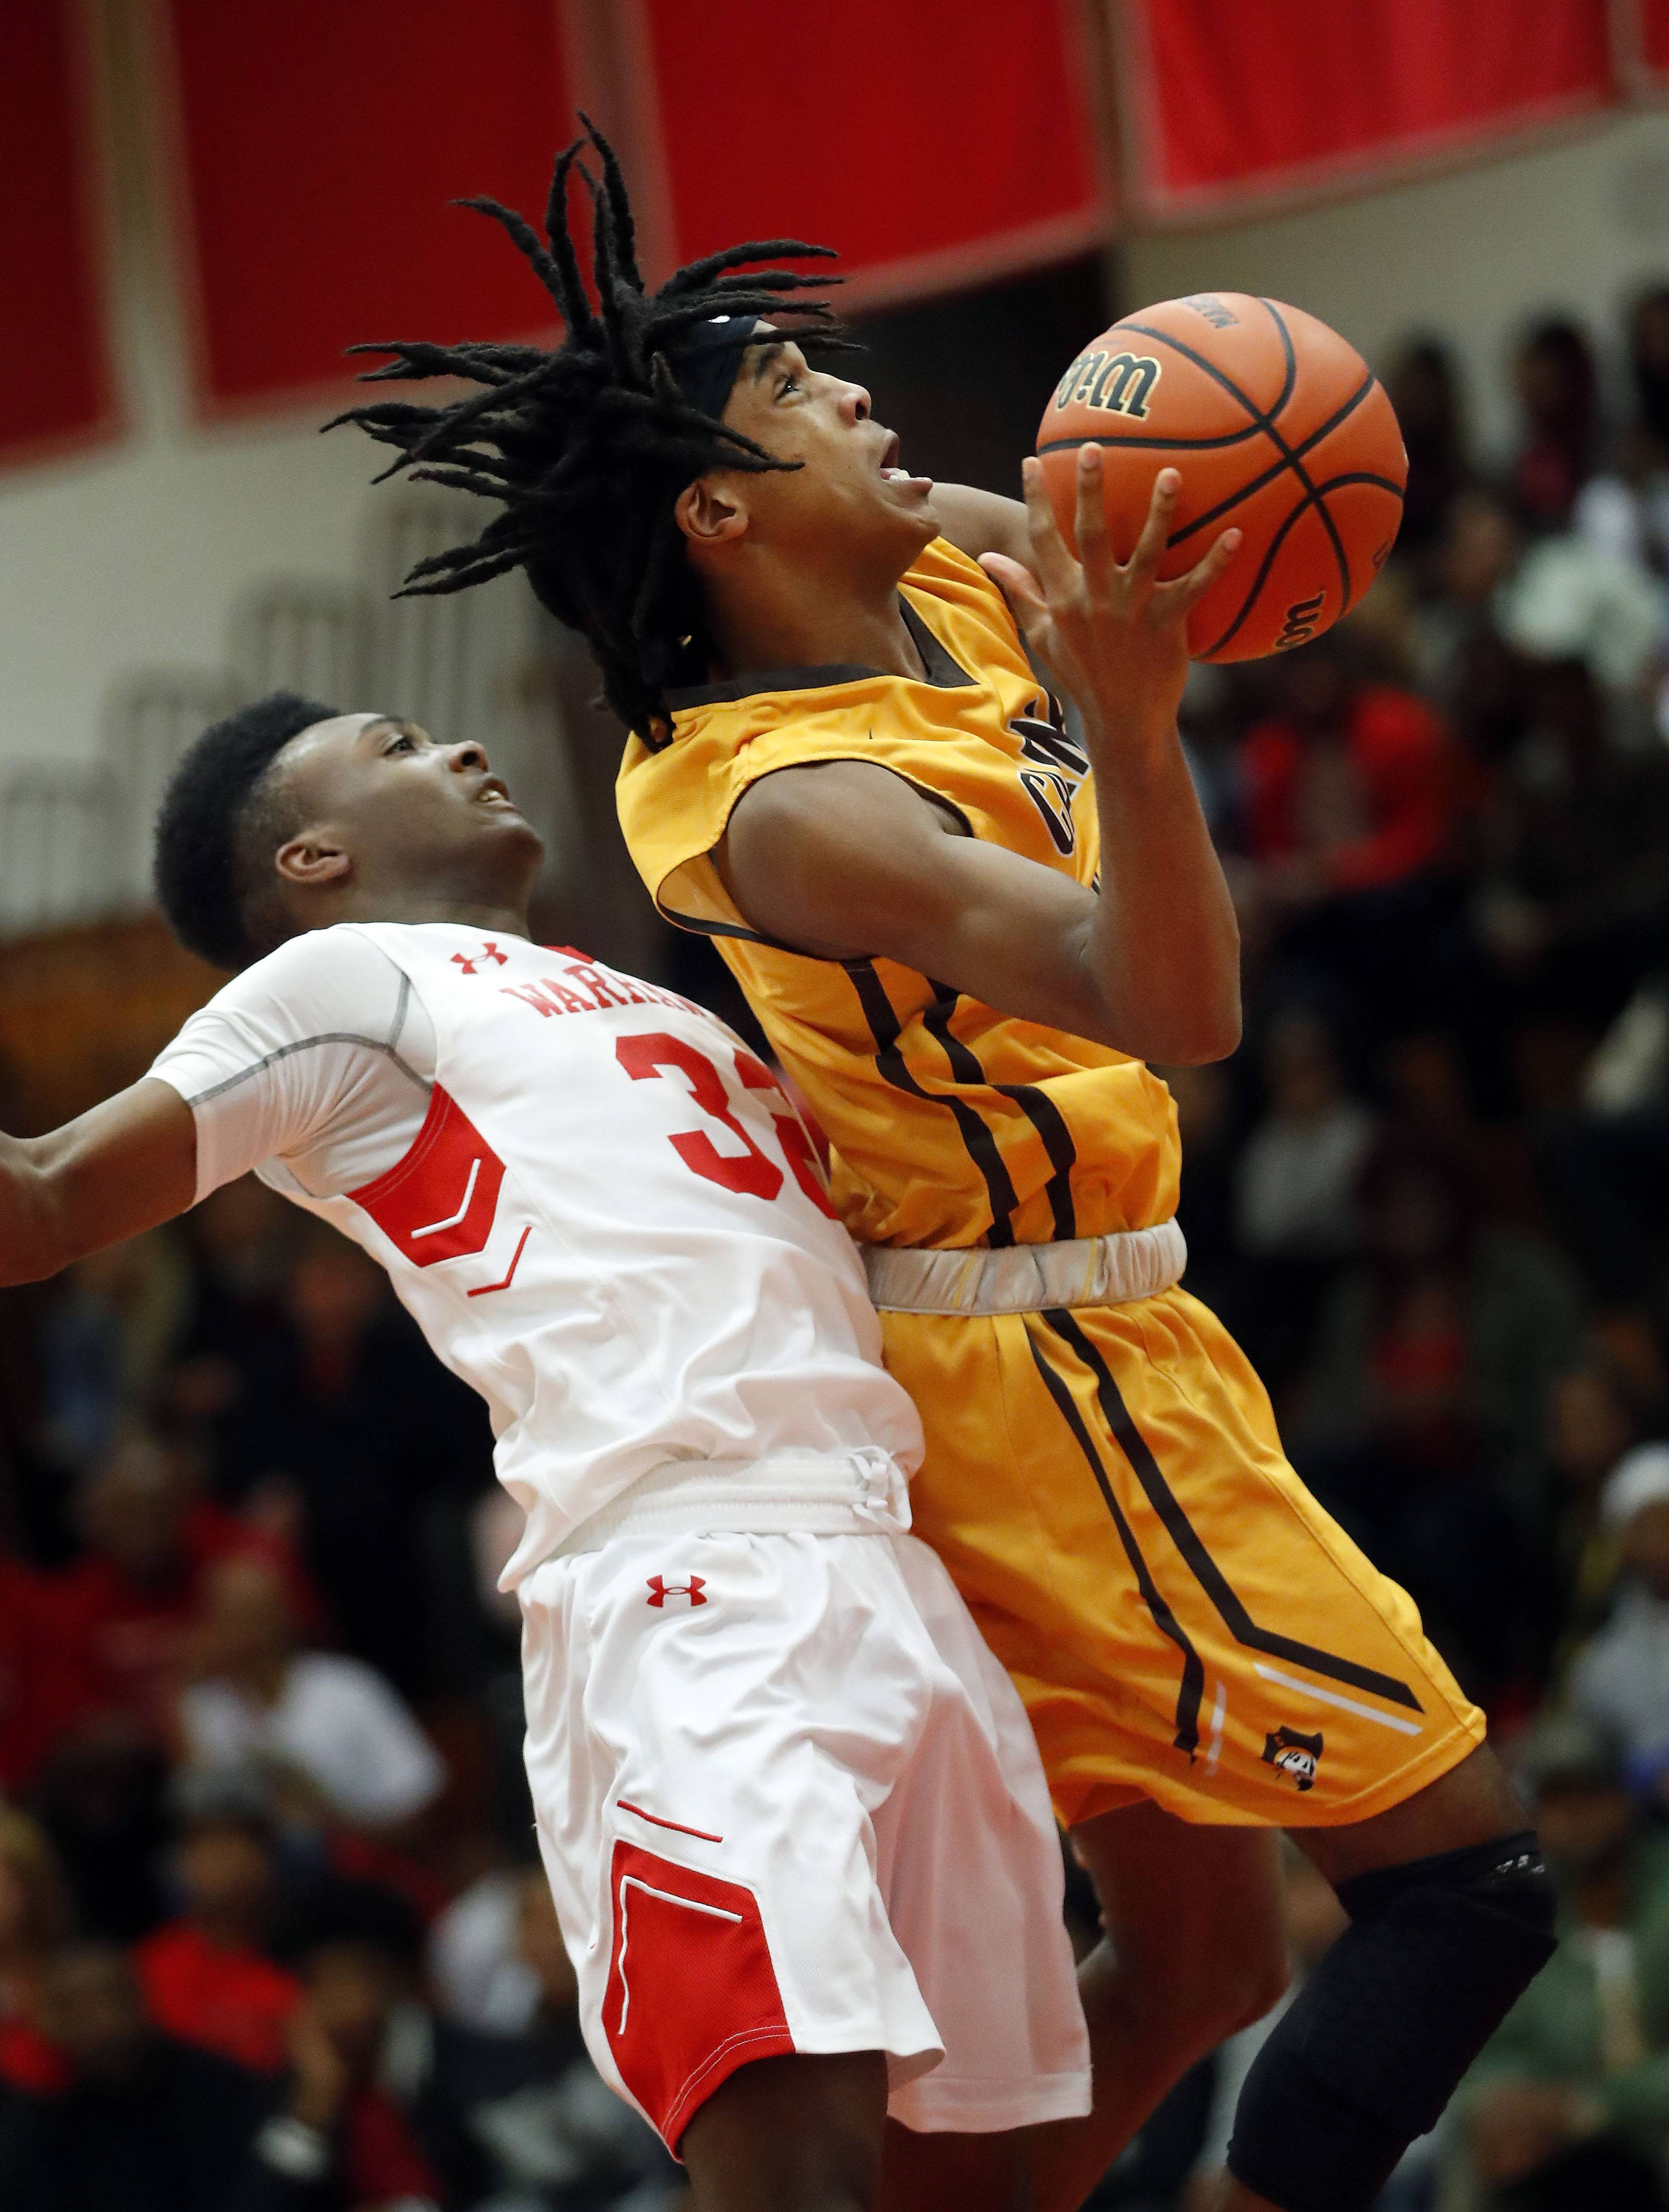 Carmel's Kimahri Wilson, right, drives on North Chicago's DyShawn Gales during Class 3A sectional semifinal play Wednesday at North Chicago.